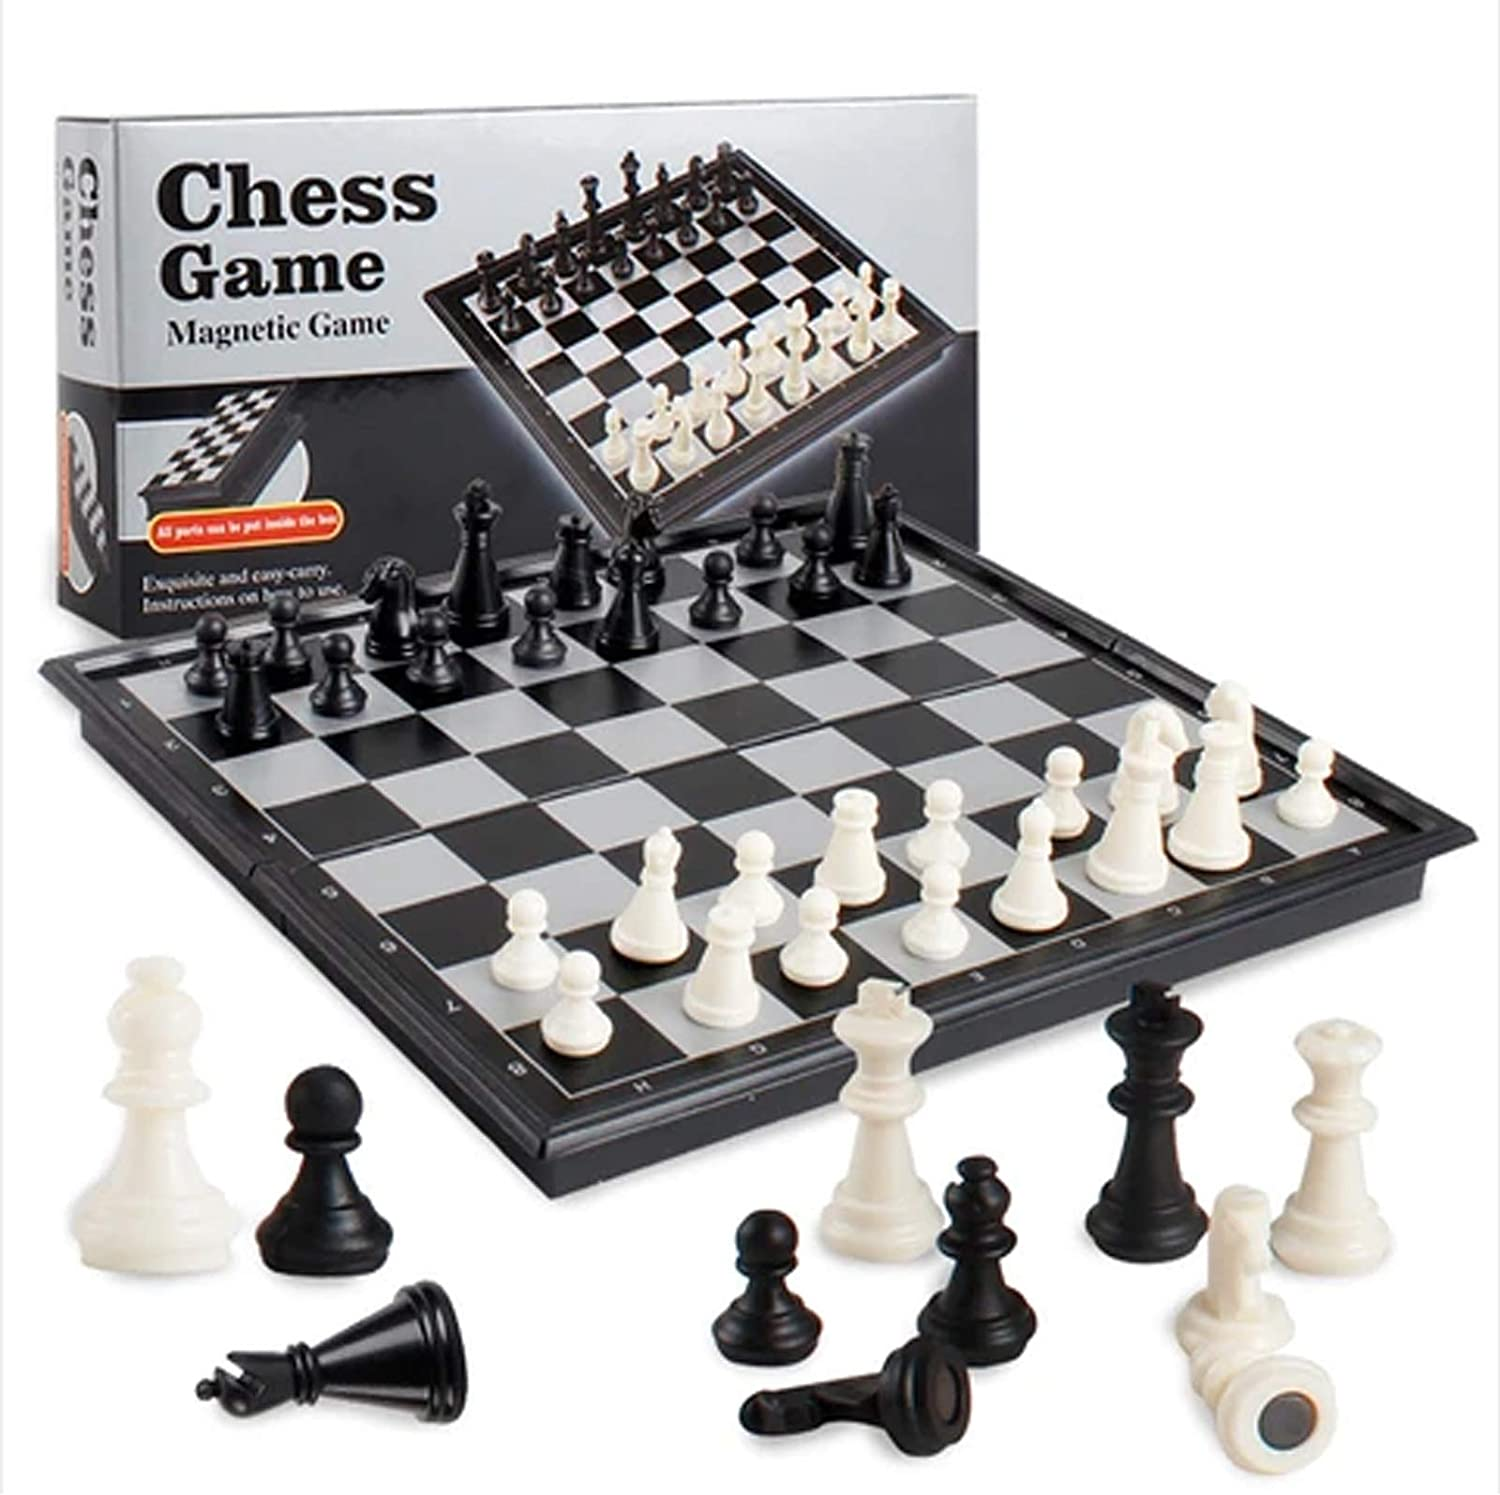 CLASSIC MAGNETIC CHESS SET WOODEN FOLDING CHESS BOARD HANDMADE PORTABLE TRAVEL CHESS-3 IN 1 CHESS BOARD GAME MINI CHESS SET- FOR KIDS AND ADULTS (SMALL)